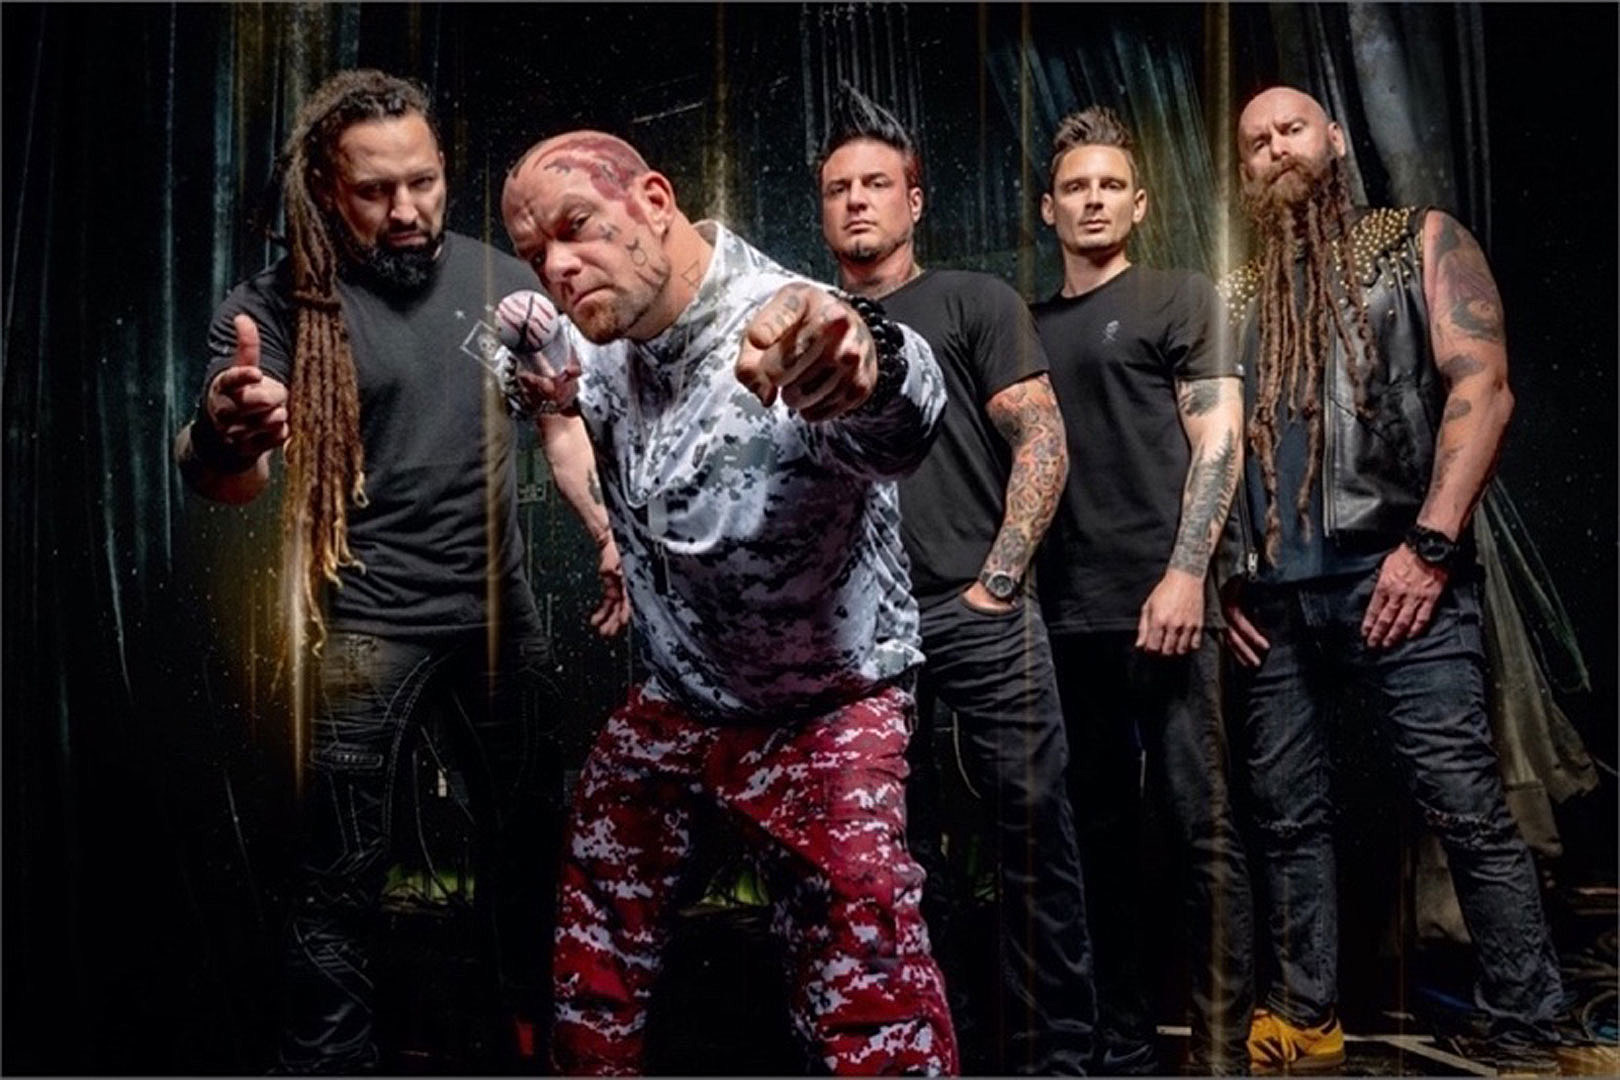 New Music: Five Finger Death Punch, Stone Temple Pilots, Blink-182 + More